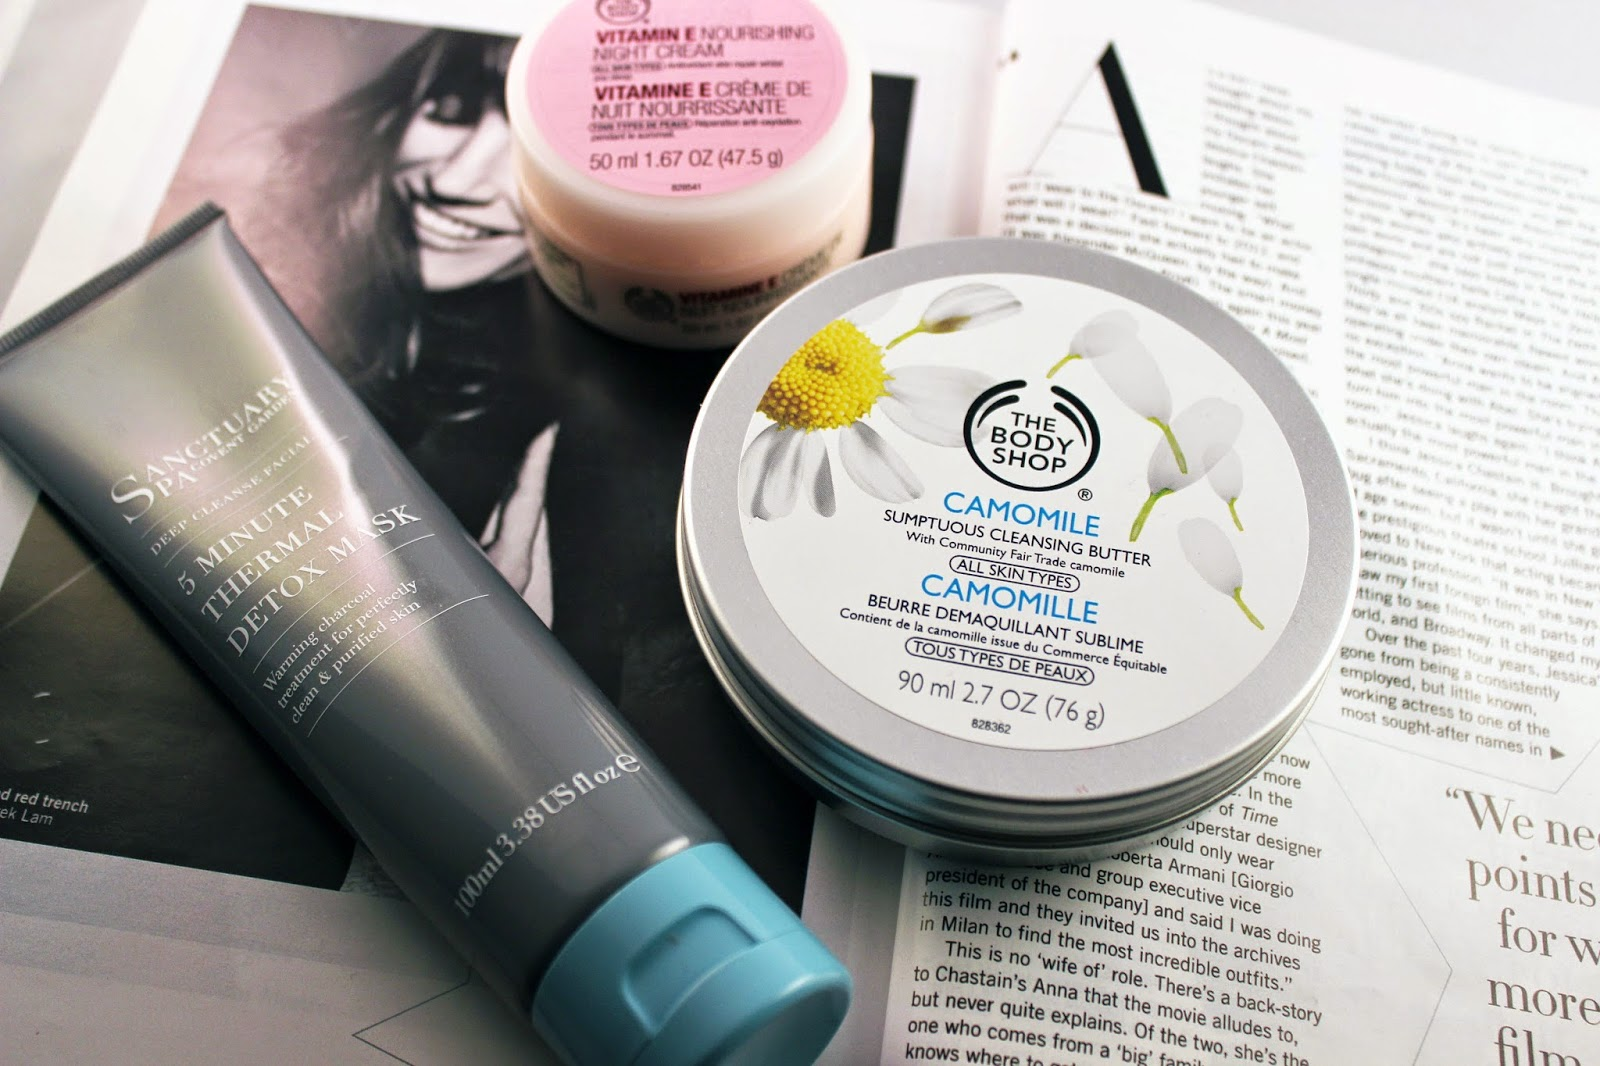 Sanctuary Spa 5 Minute Thermal Cleansing Mask, The Body Shop Camomile Cleansing Butter, the Bosy Shop Vitamin E Night Cream